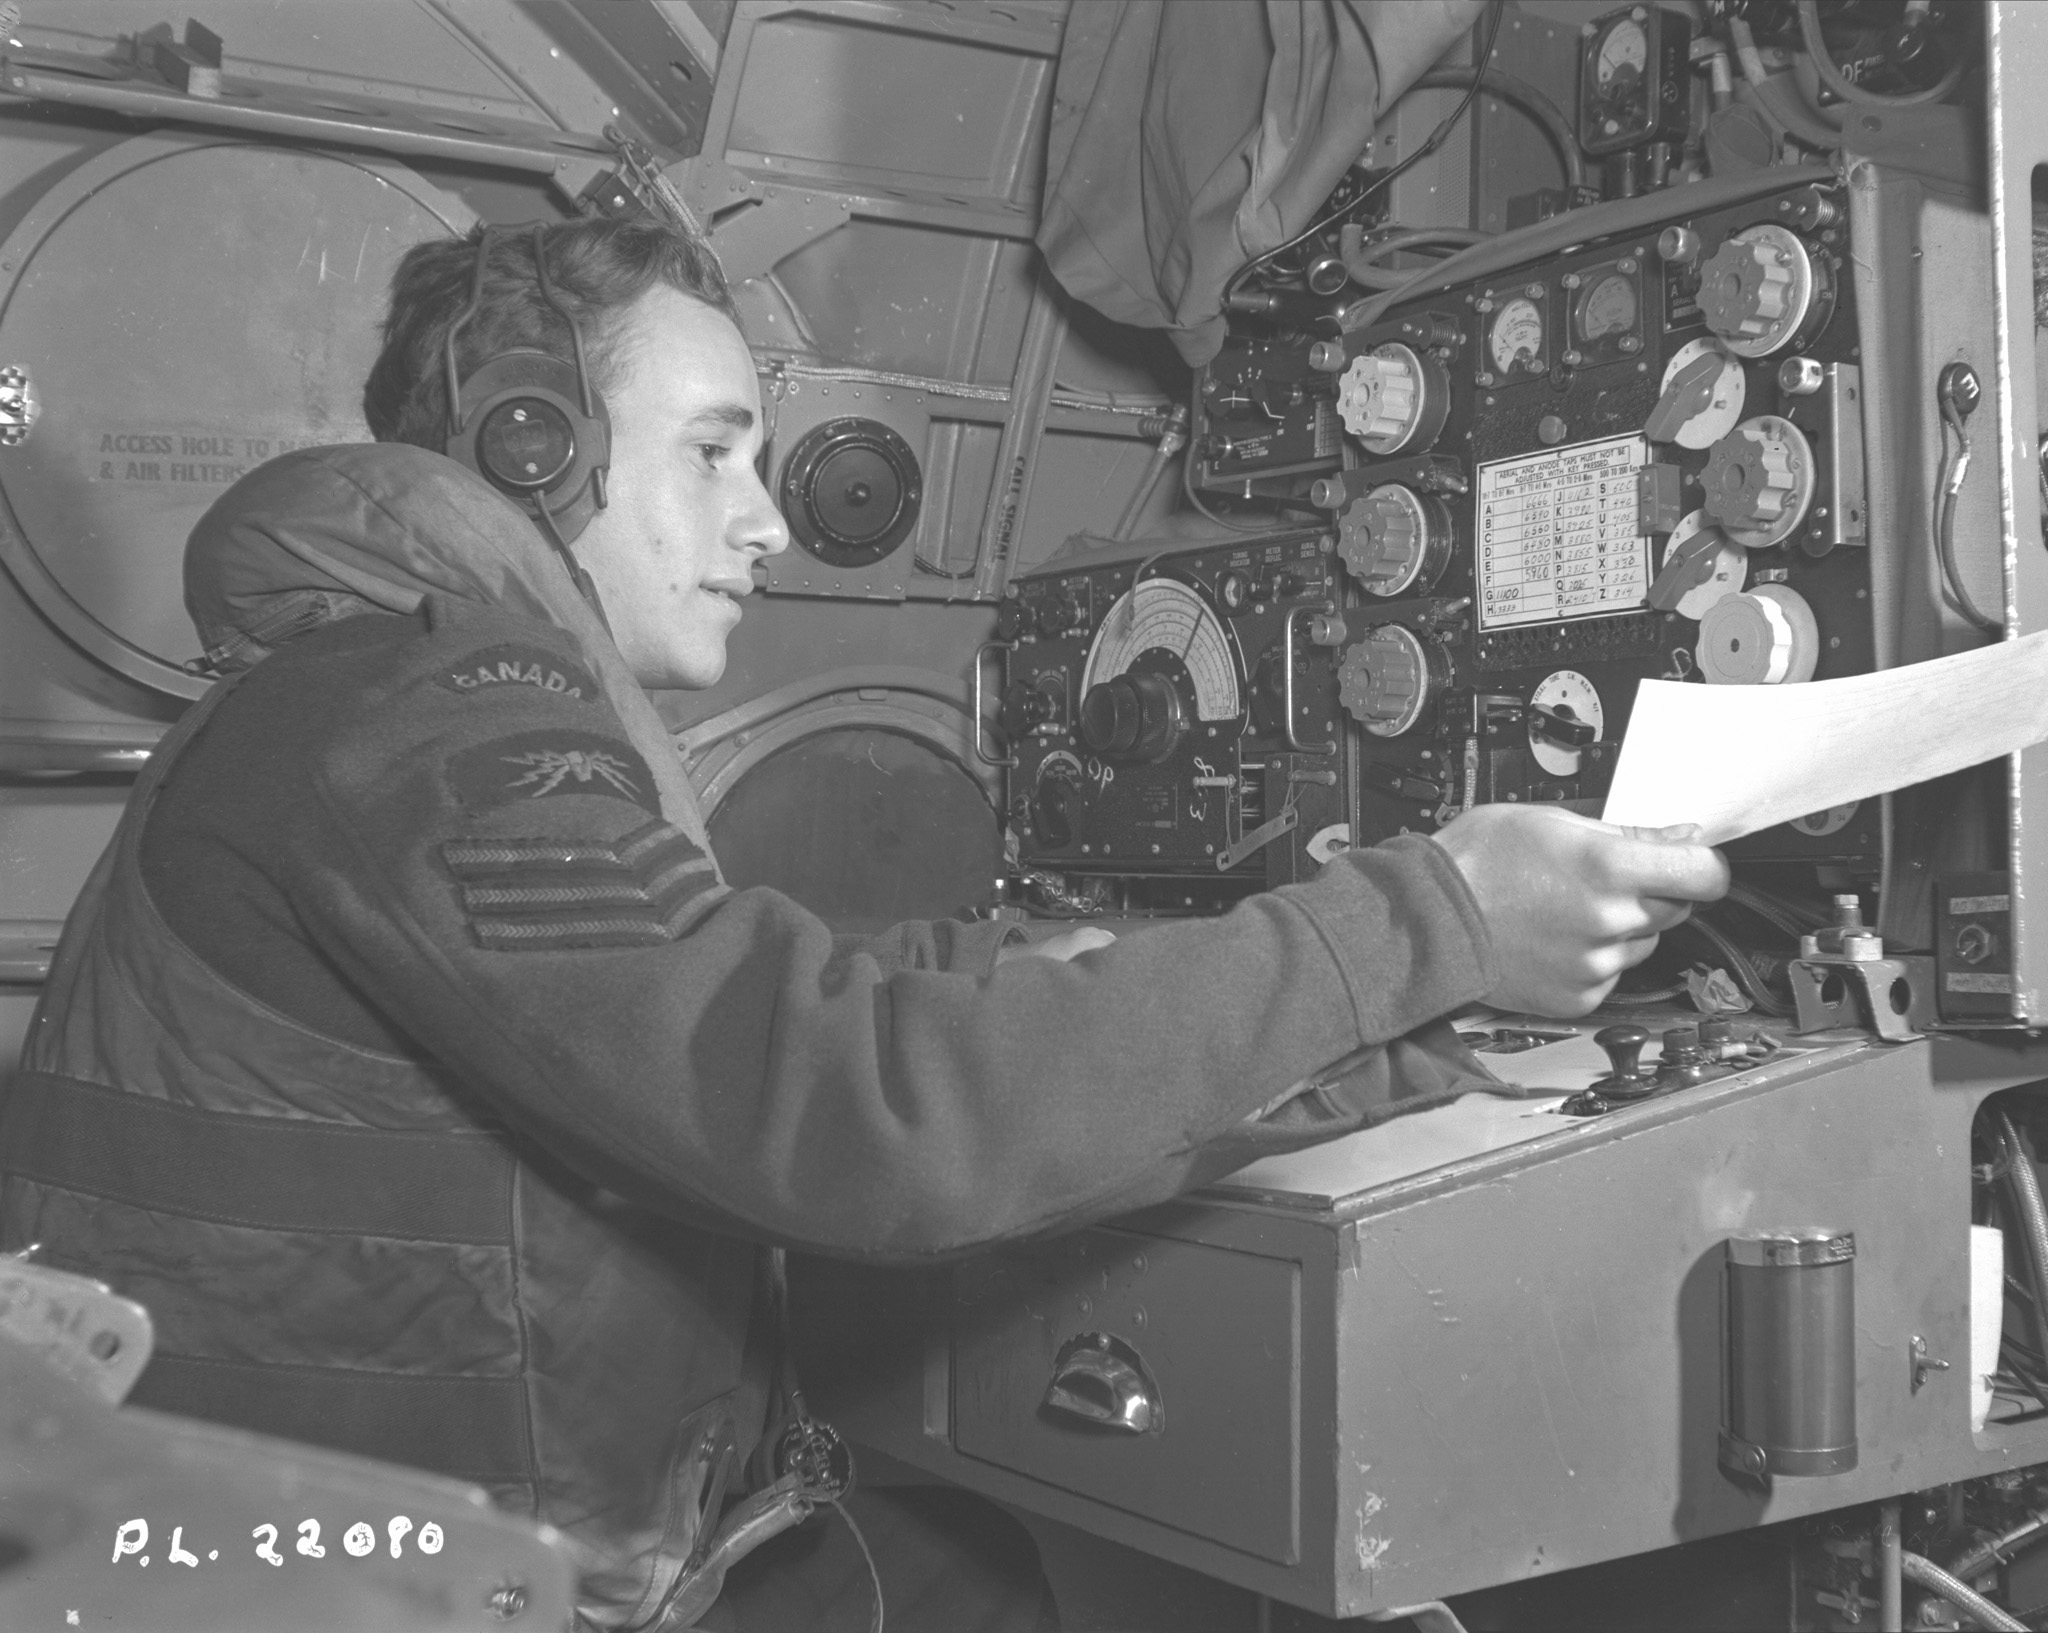 Sergeant L.J. Irving, a wireless operator onboard a Sunderland flying boat from the RCAF's 423 Squadron, part of Coastal Command, hands a message to his skipper during an anti-submarine patrol. PHOTO: DND Archives, PL-22080